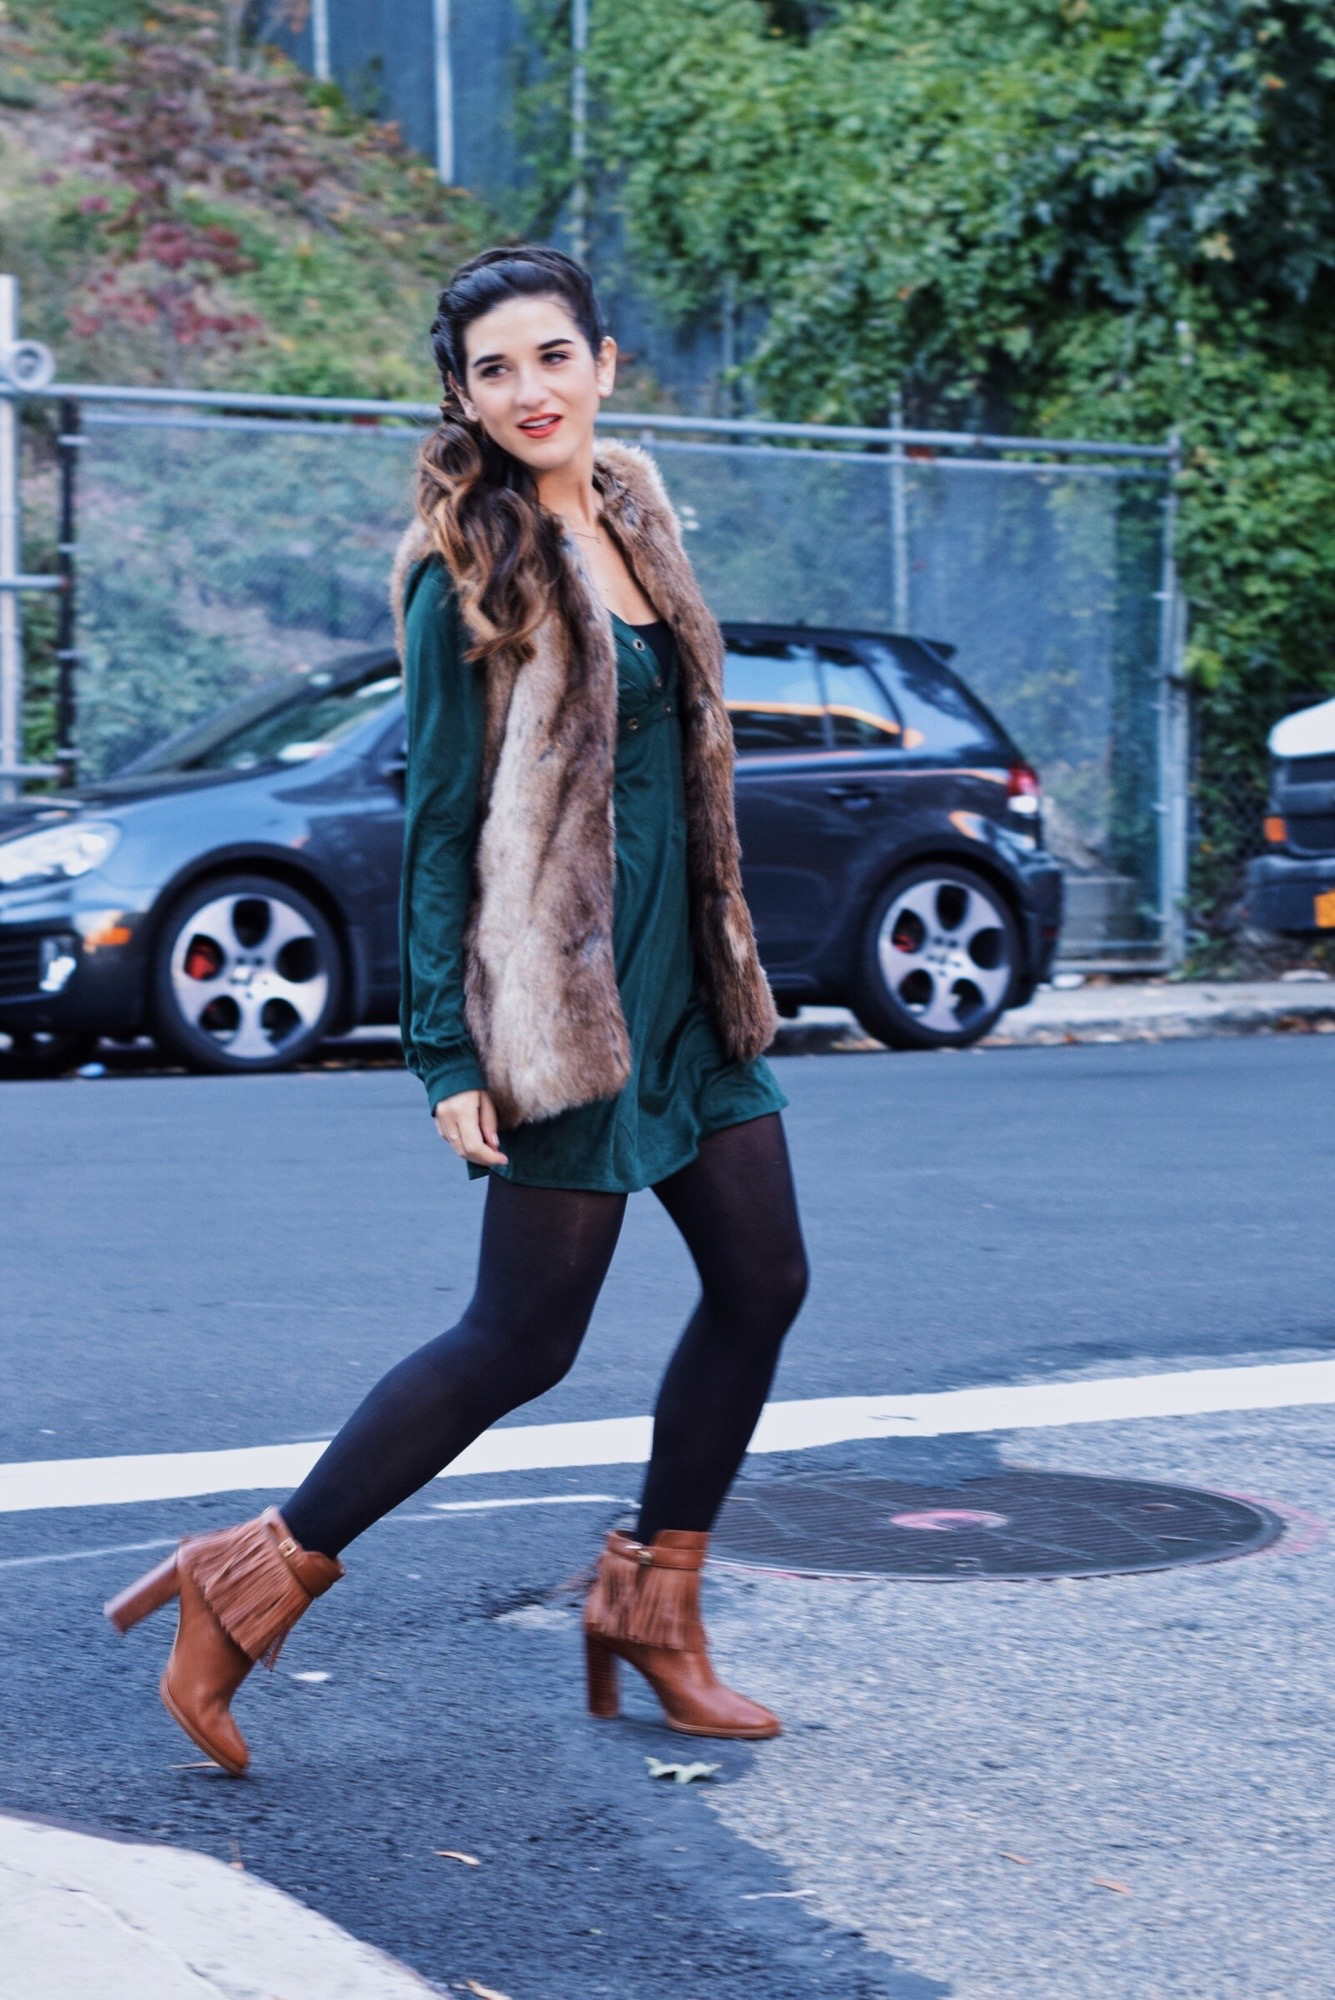 Suede Eyelet Dress Trescool Louboutins & Love Fashion Blog Esther Santer Street Style NYC Blogger Fall Winter Black Tights Ivanka Trump Fringe Booties Camel Hair Girl Women Beautiful Photoshoot Model Trendy Outfit OOTD Inspo Zara Fur Vest What To Wear.JPG